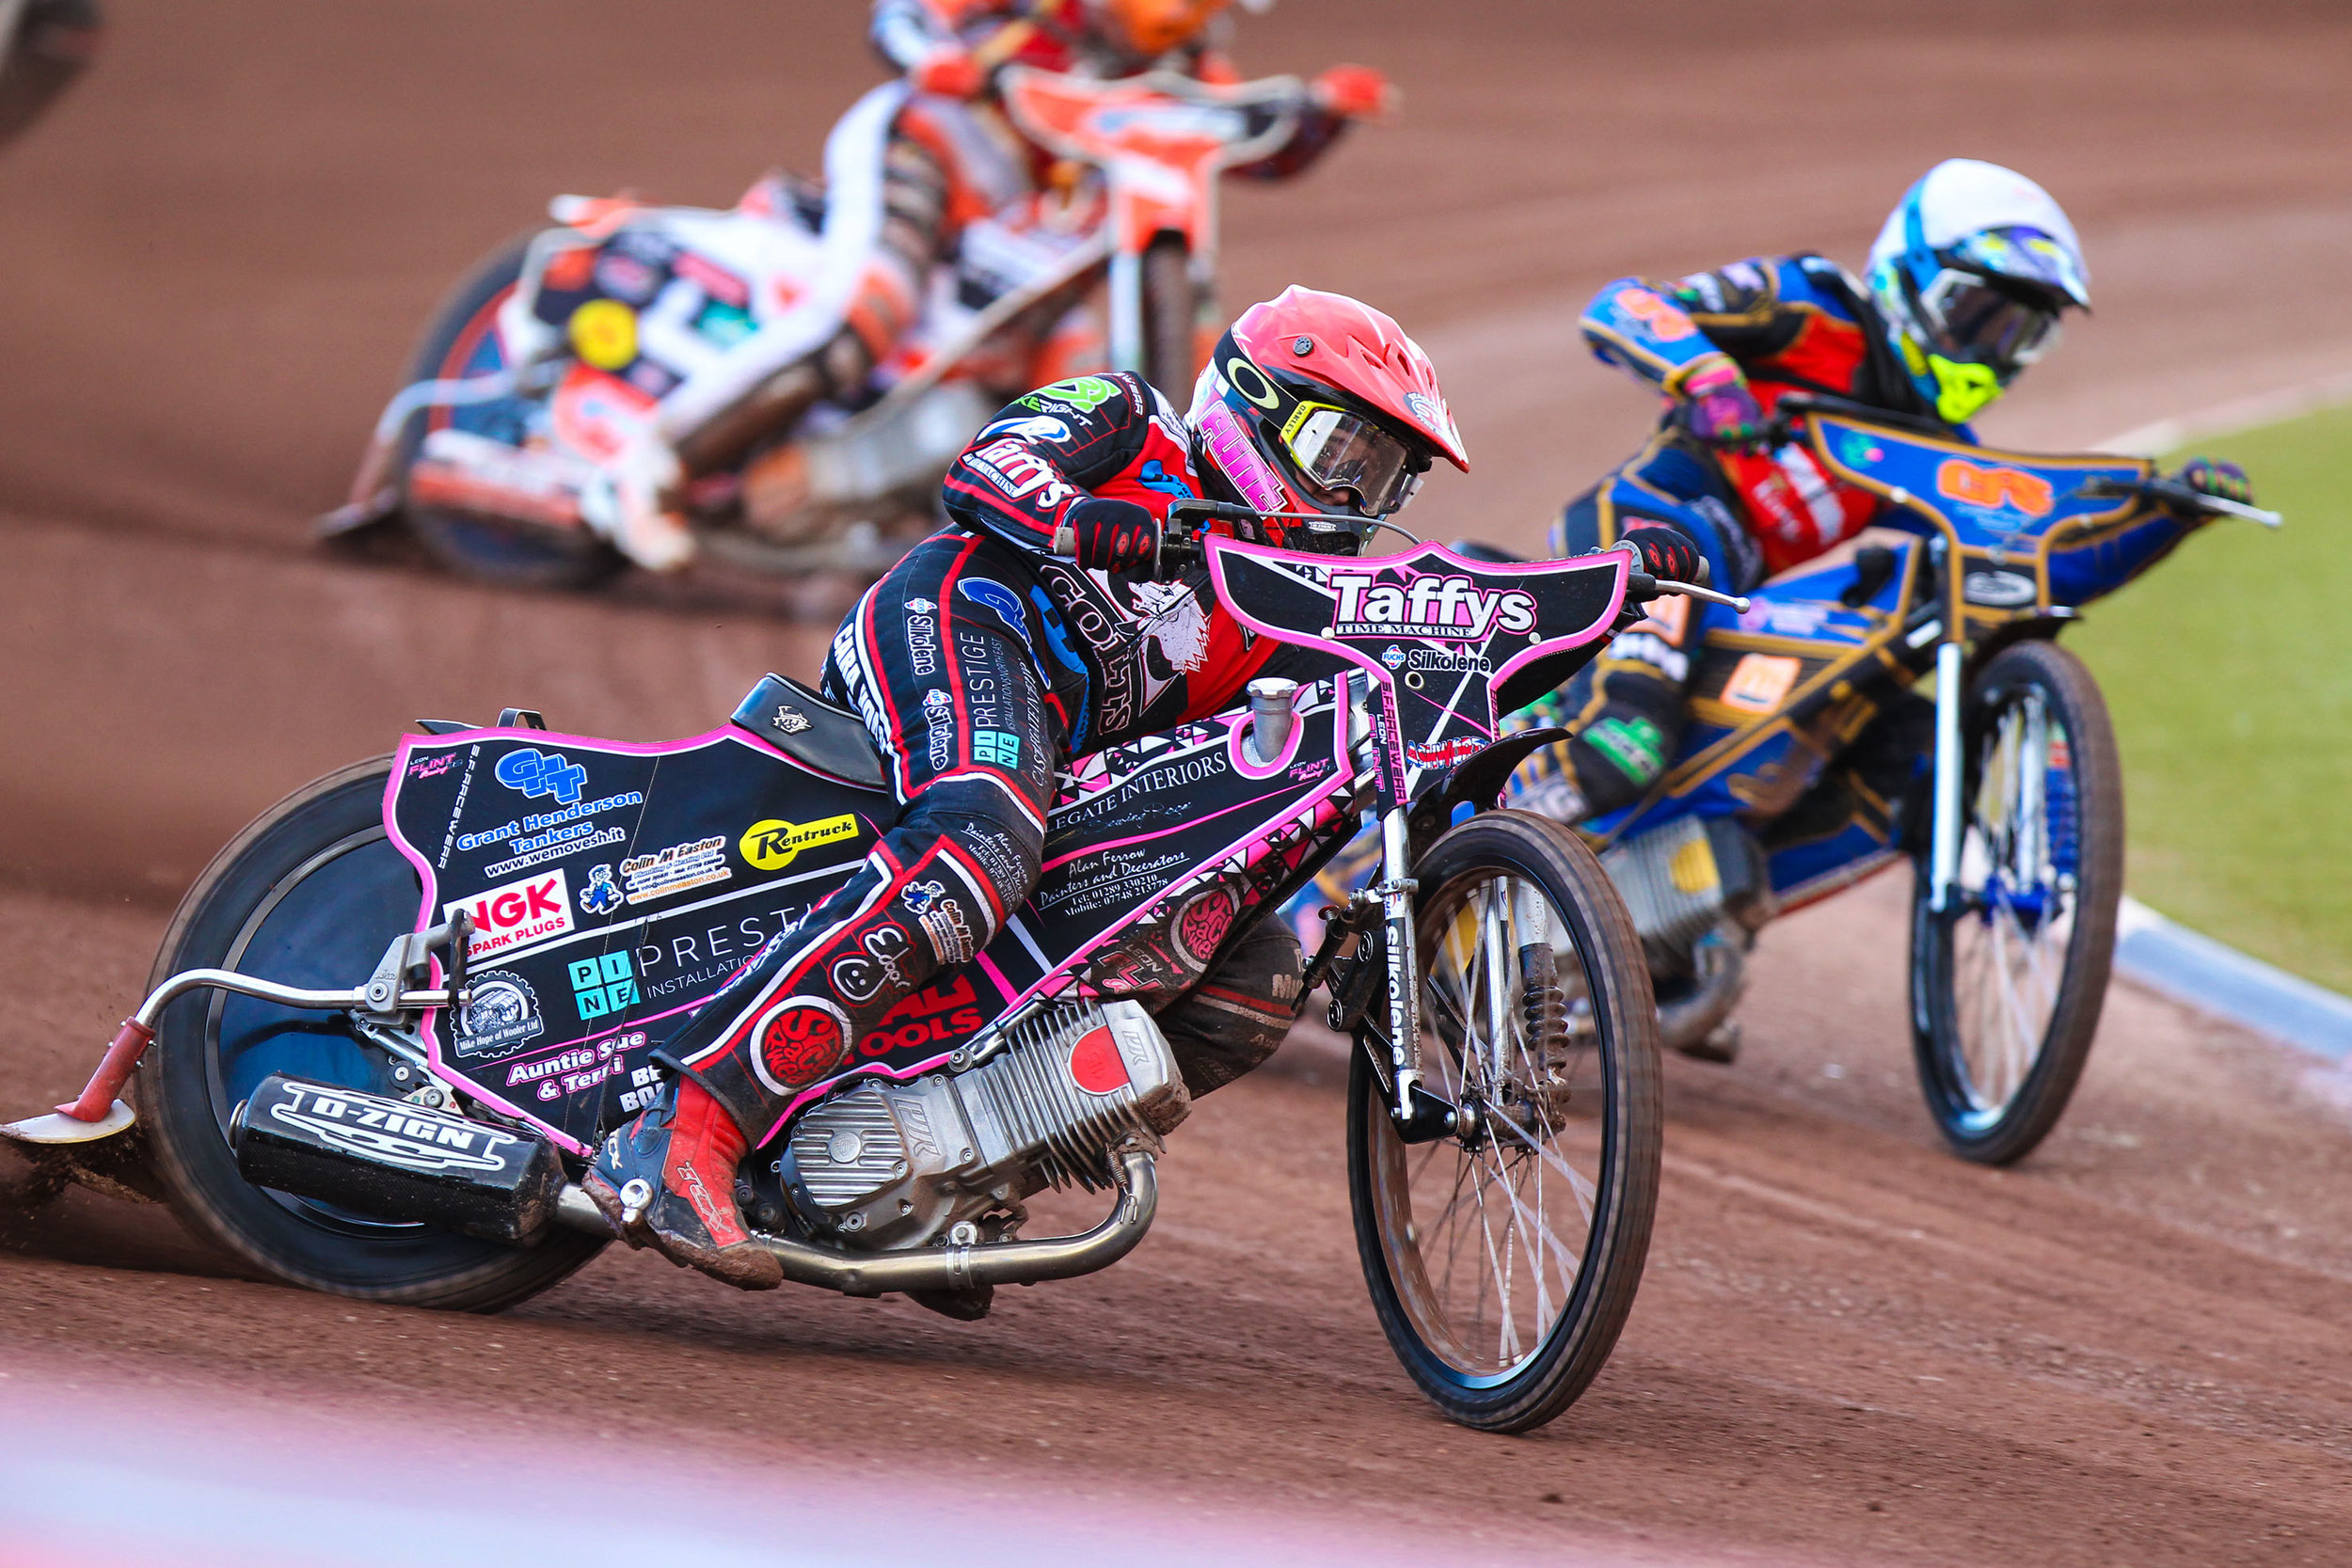 Leon Flint will miss Thursday's home meeting after crashing out at Berwick at the weekend